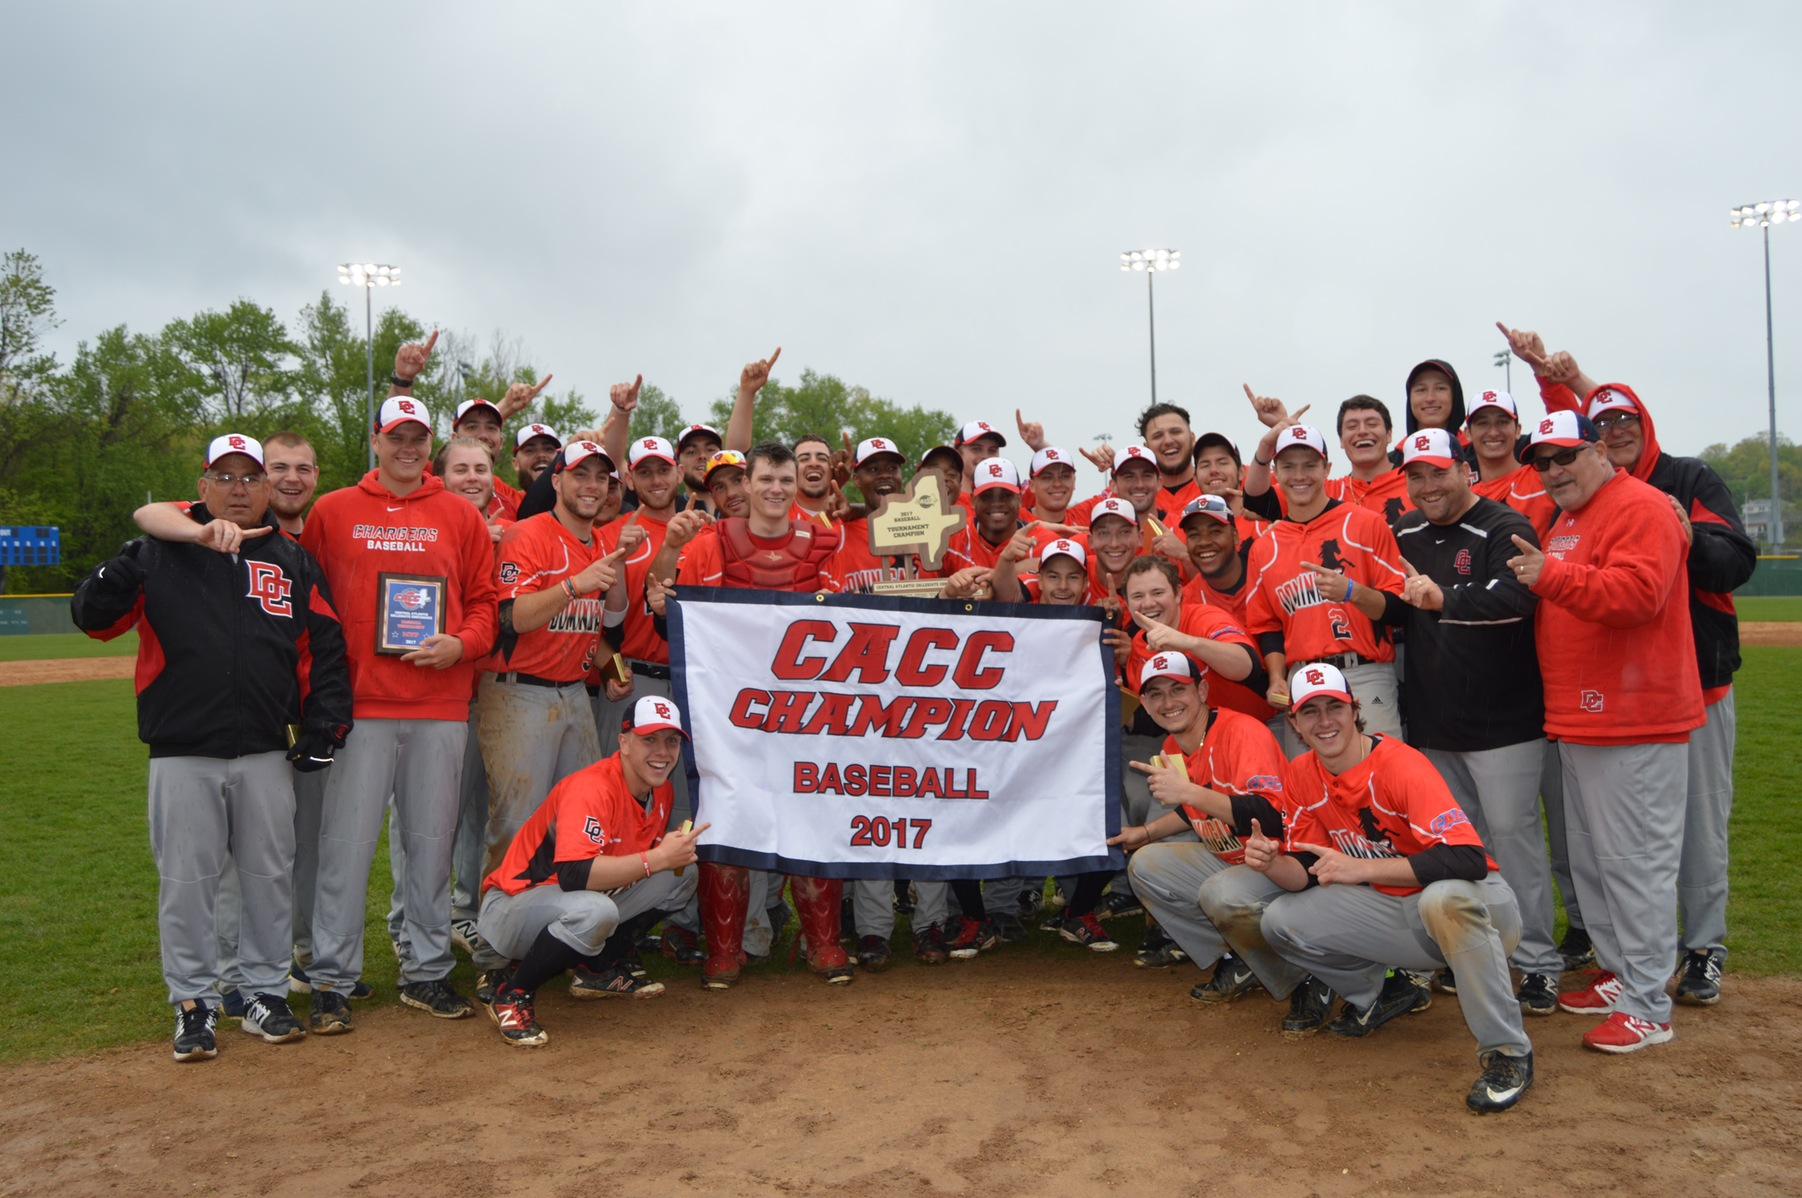 DOMINICAN WINS 2ND GAME AGAINST CHC TO CLAIM 2017 CACC BASEBALL CHAMPIONSHIP